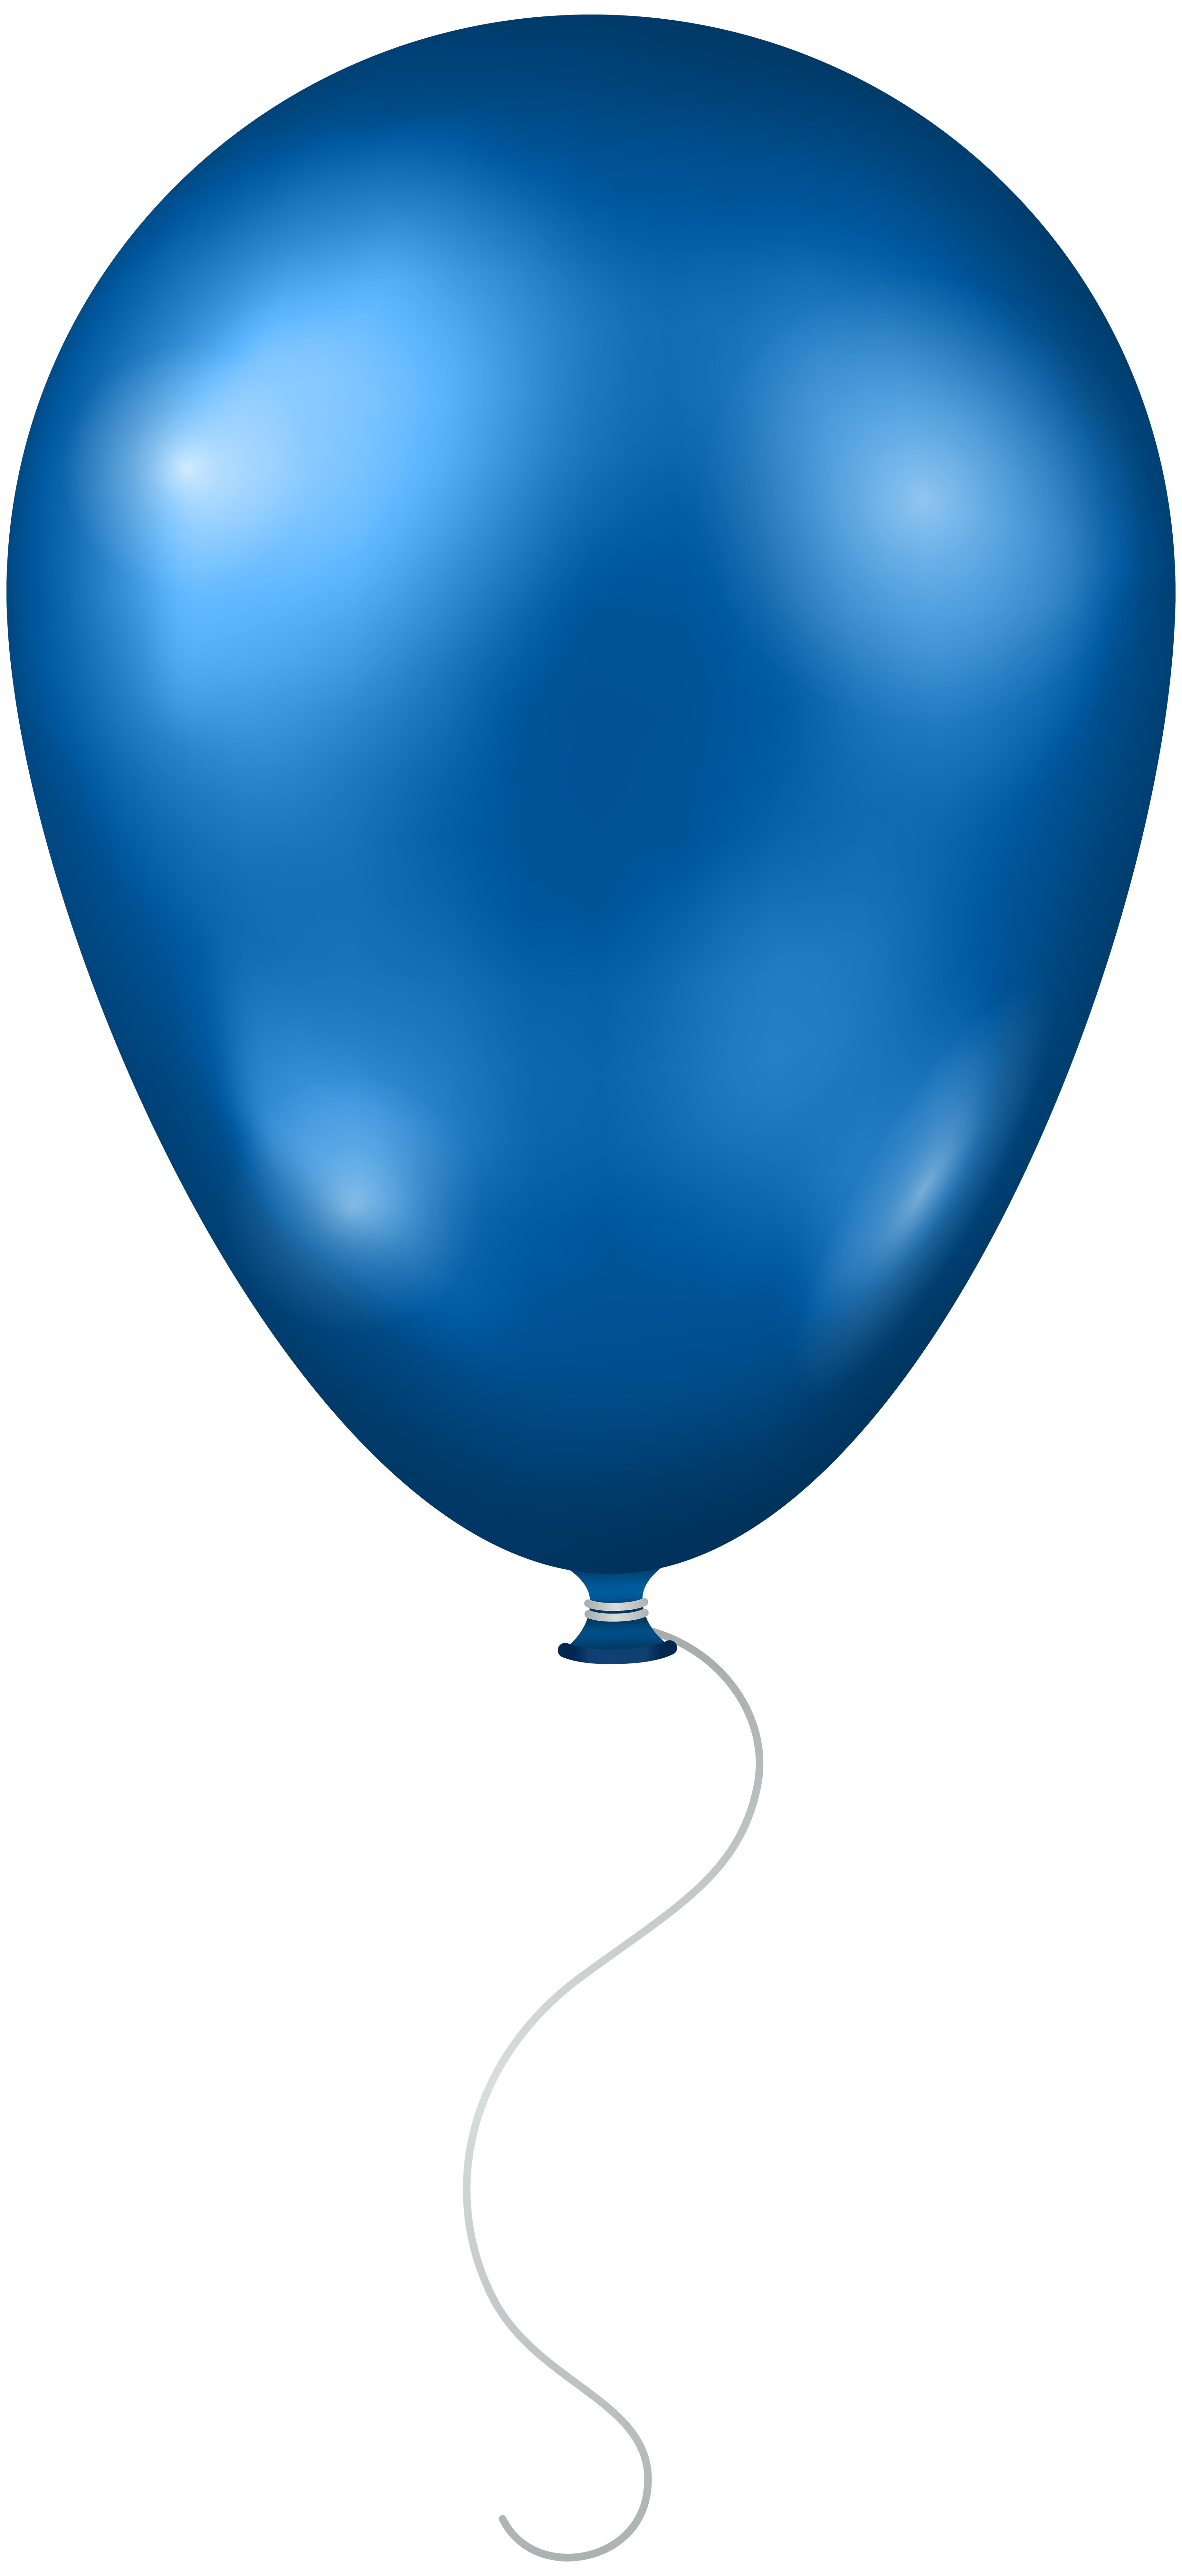 Blue Balloons Background Png Balloon Background Blue Balloons Transparent Balloons